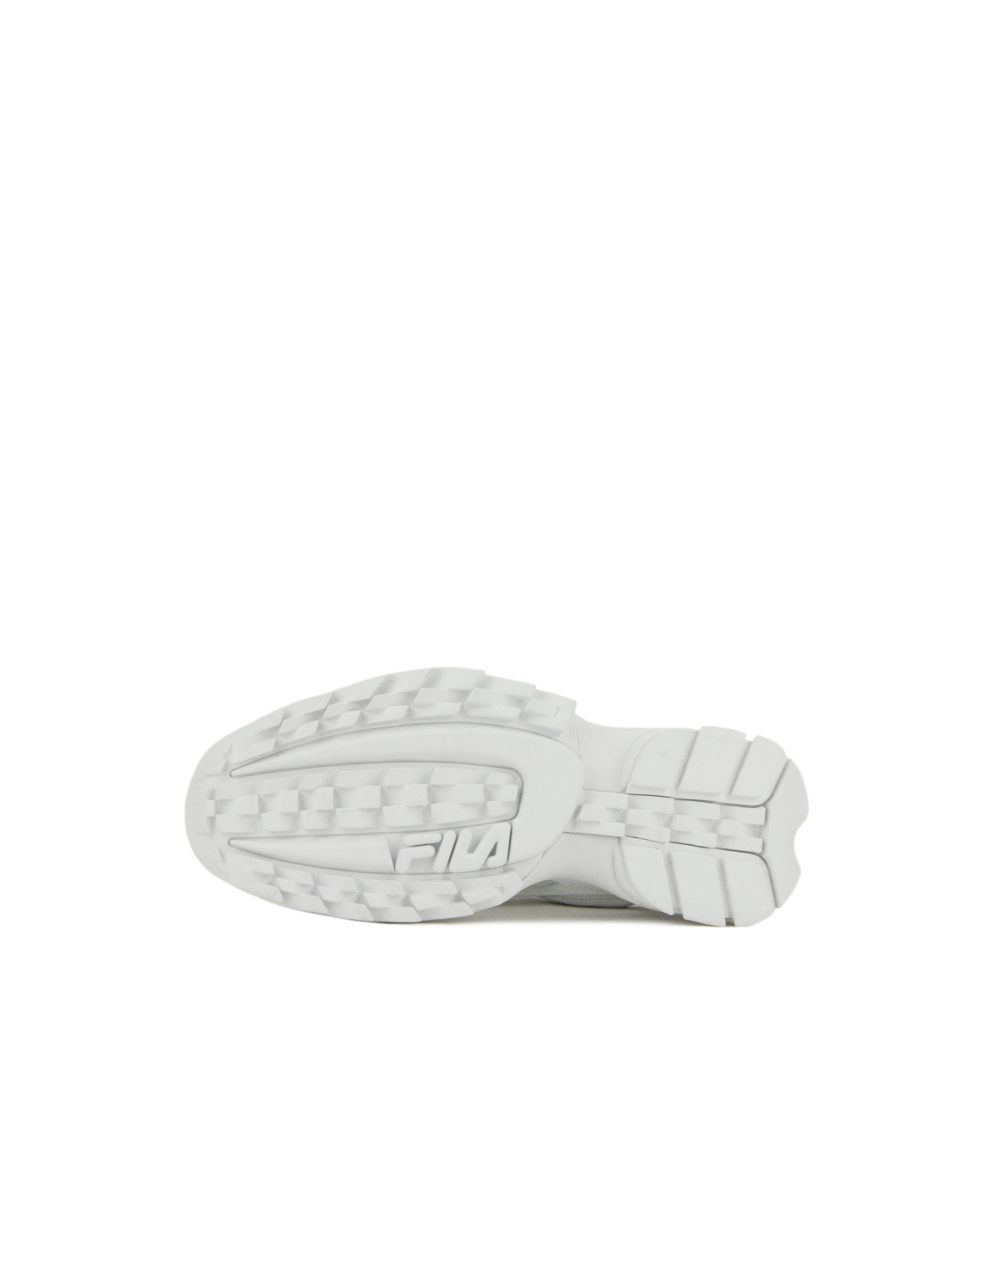 Fila Disruptor II Wedge (5FM00704-125) White